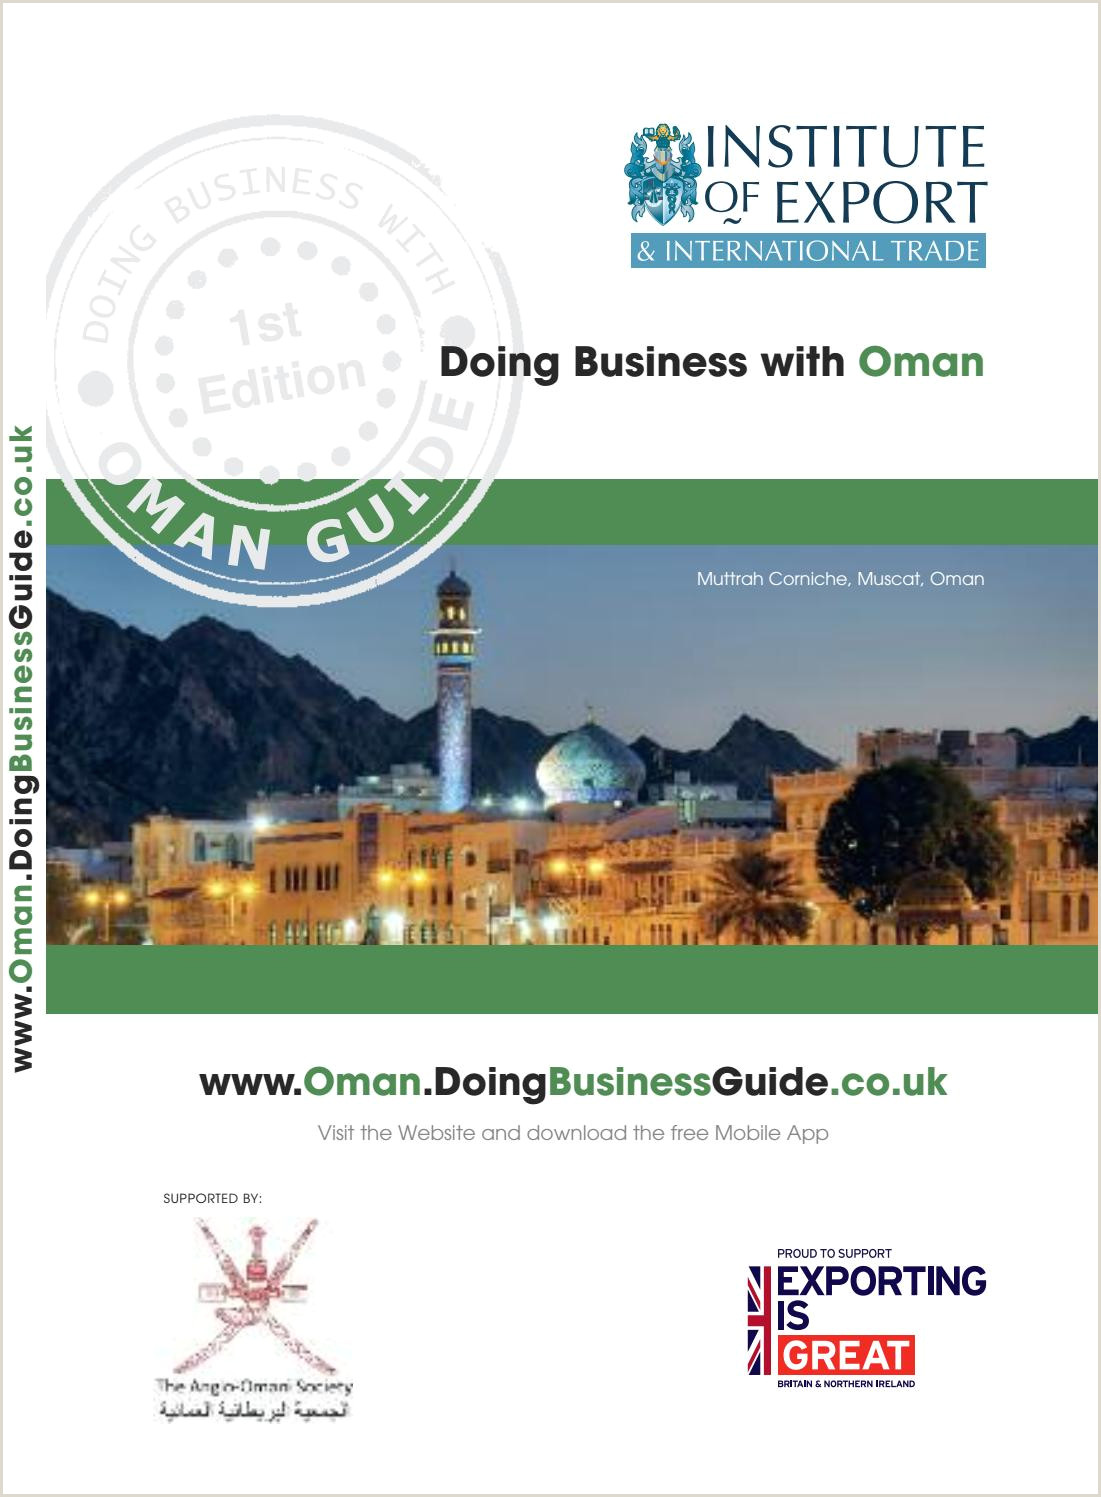 Business Cards Local Doing Business With Oman Guide By Doing Business Guides Issuu